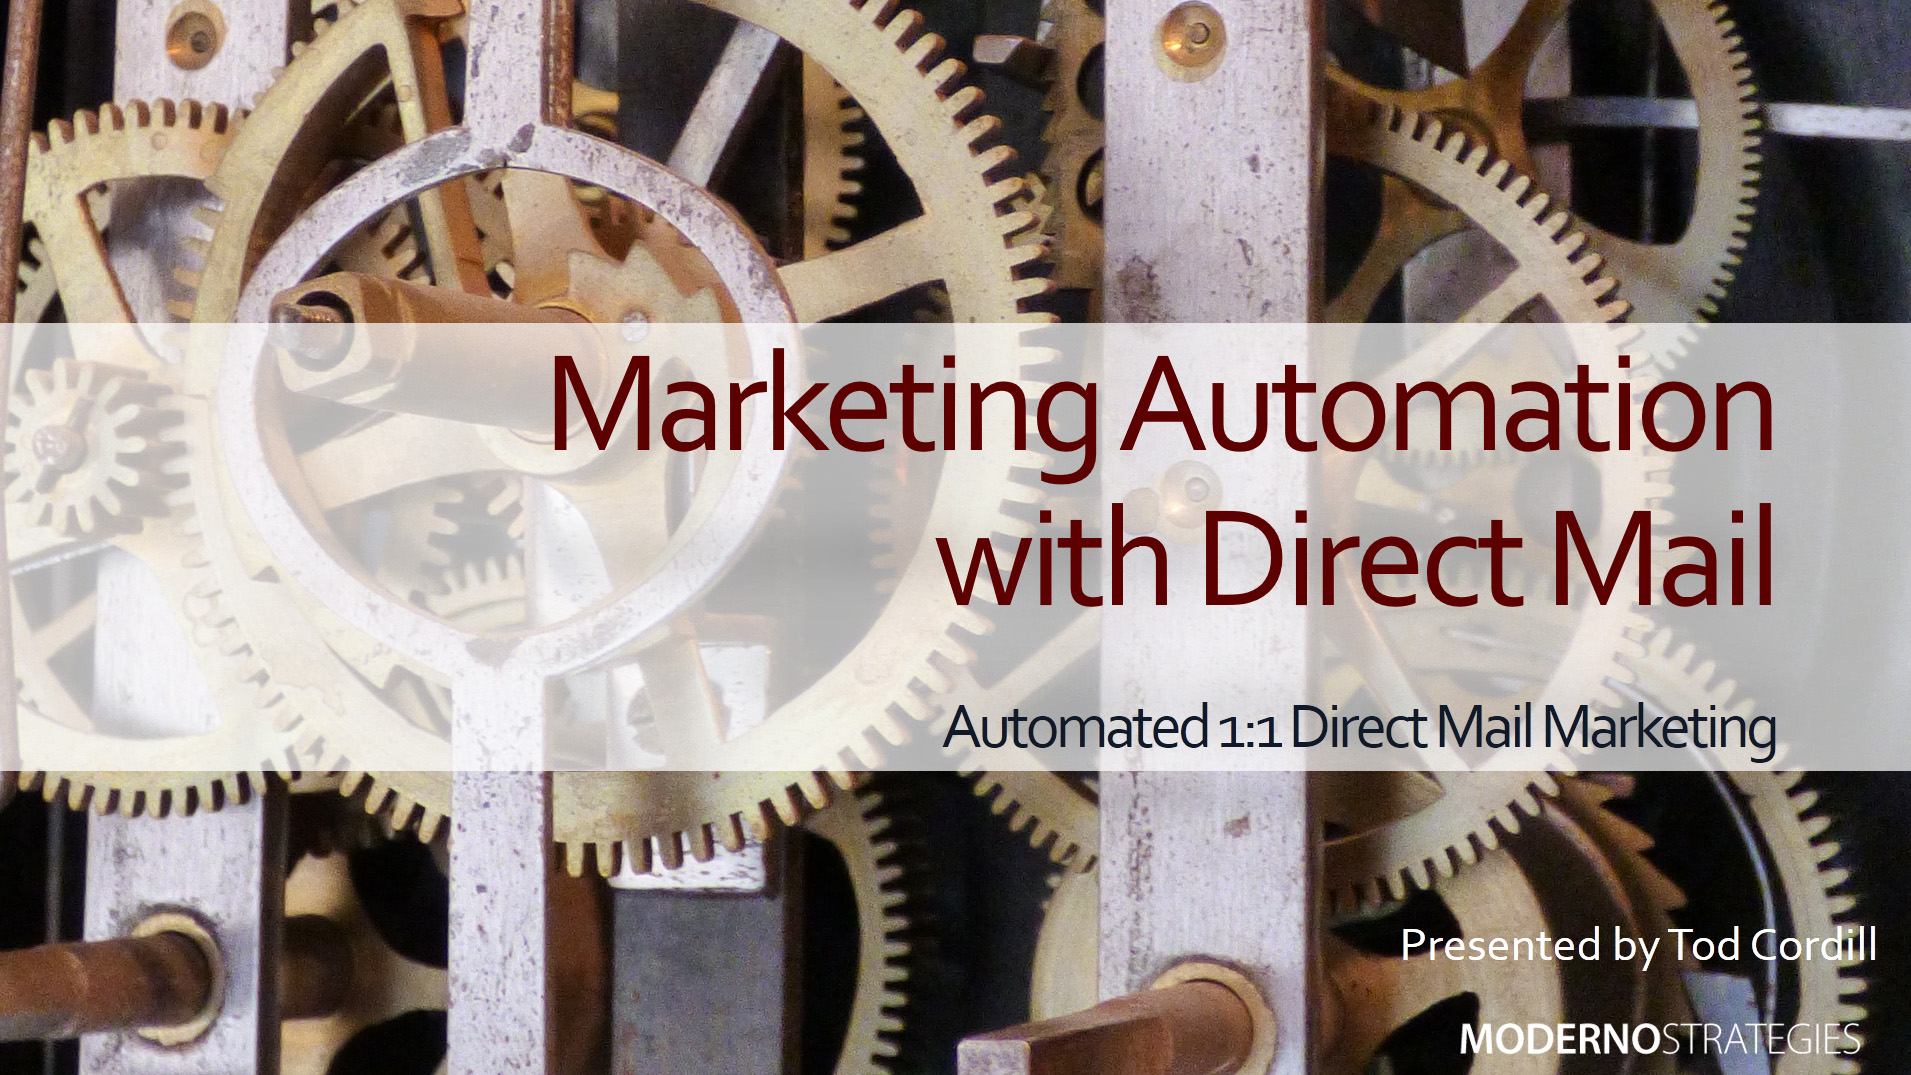 Leverage Direct Mail in Your Marketing Automation Programs